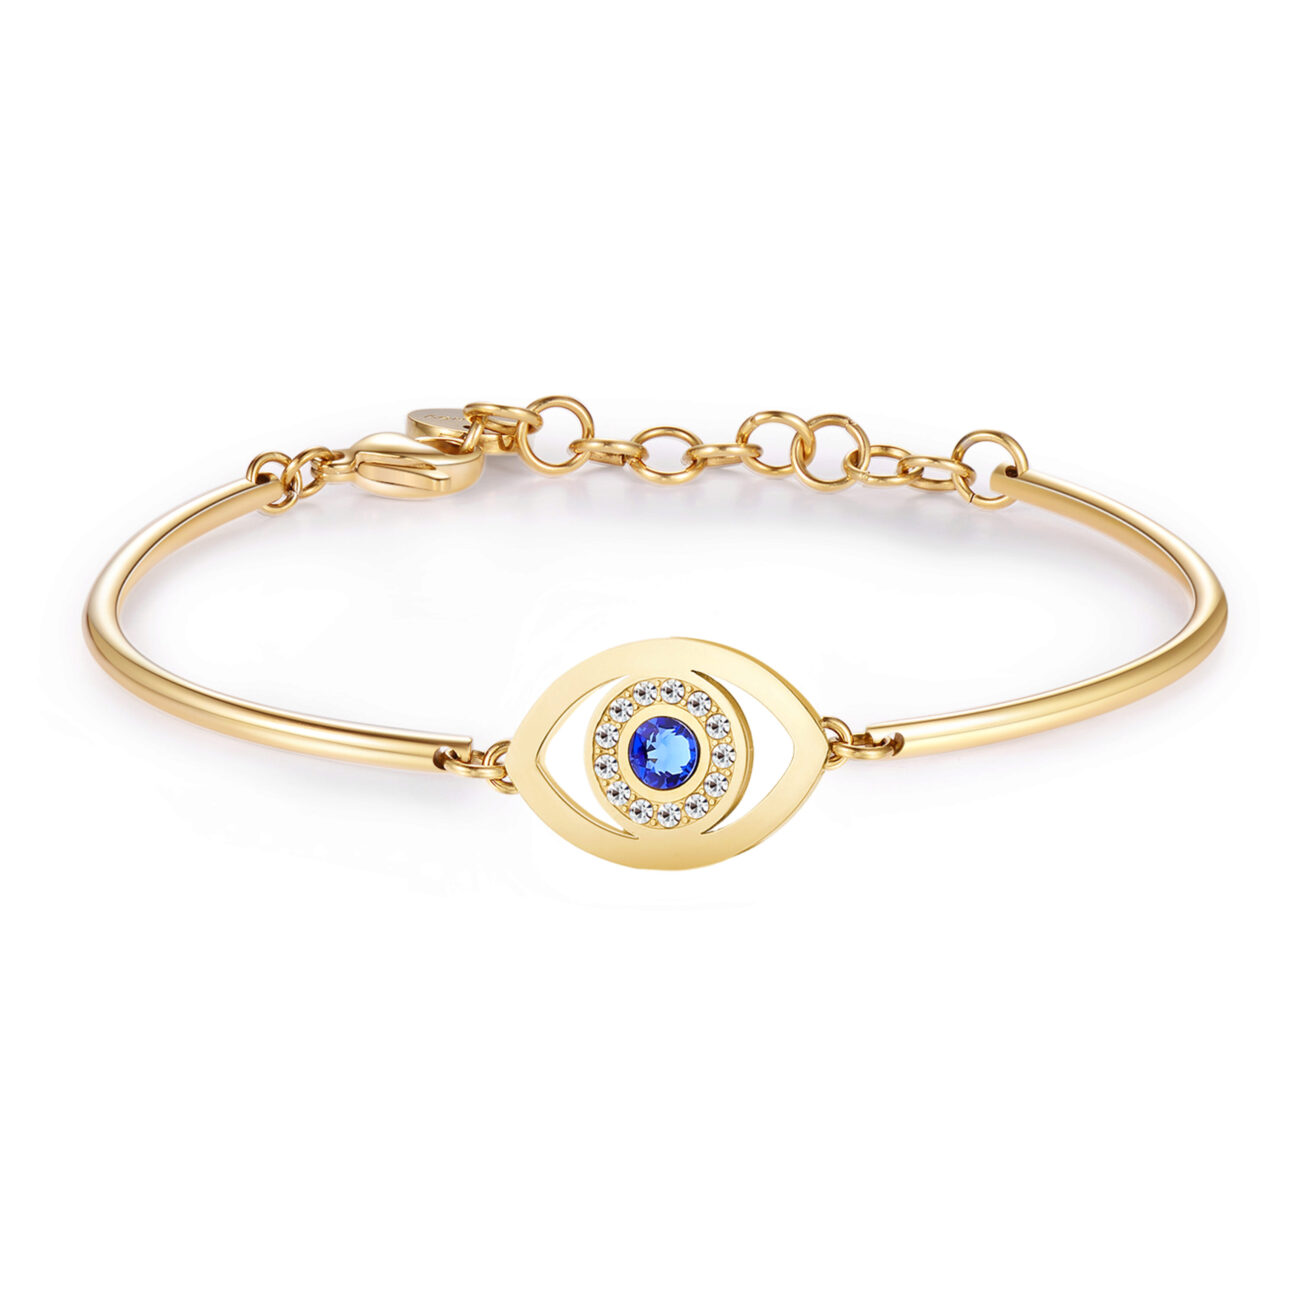 EYE: PROFOUNDNESS, INTROSPECTION, TRUTHThe eye is the mirror of the soul. It sees your outer and inner self, revealing your emotions and feelings. This symbol promotes reflection and balance. 316L Stainless steel bracelet, gold PVD with engraved disc and Swarovski® crystals.